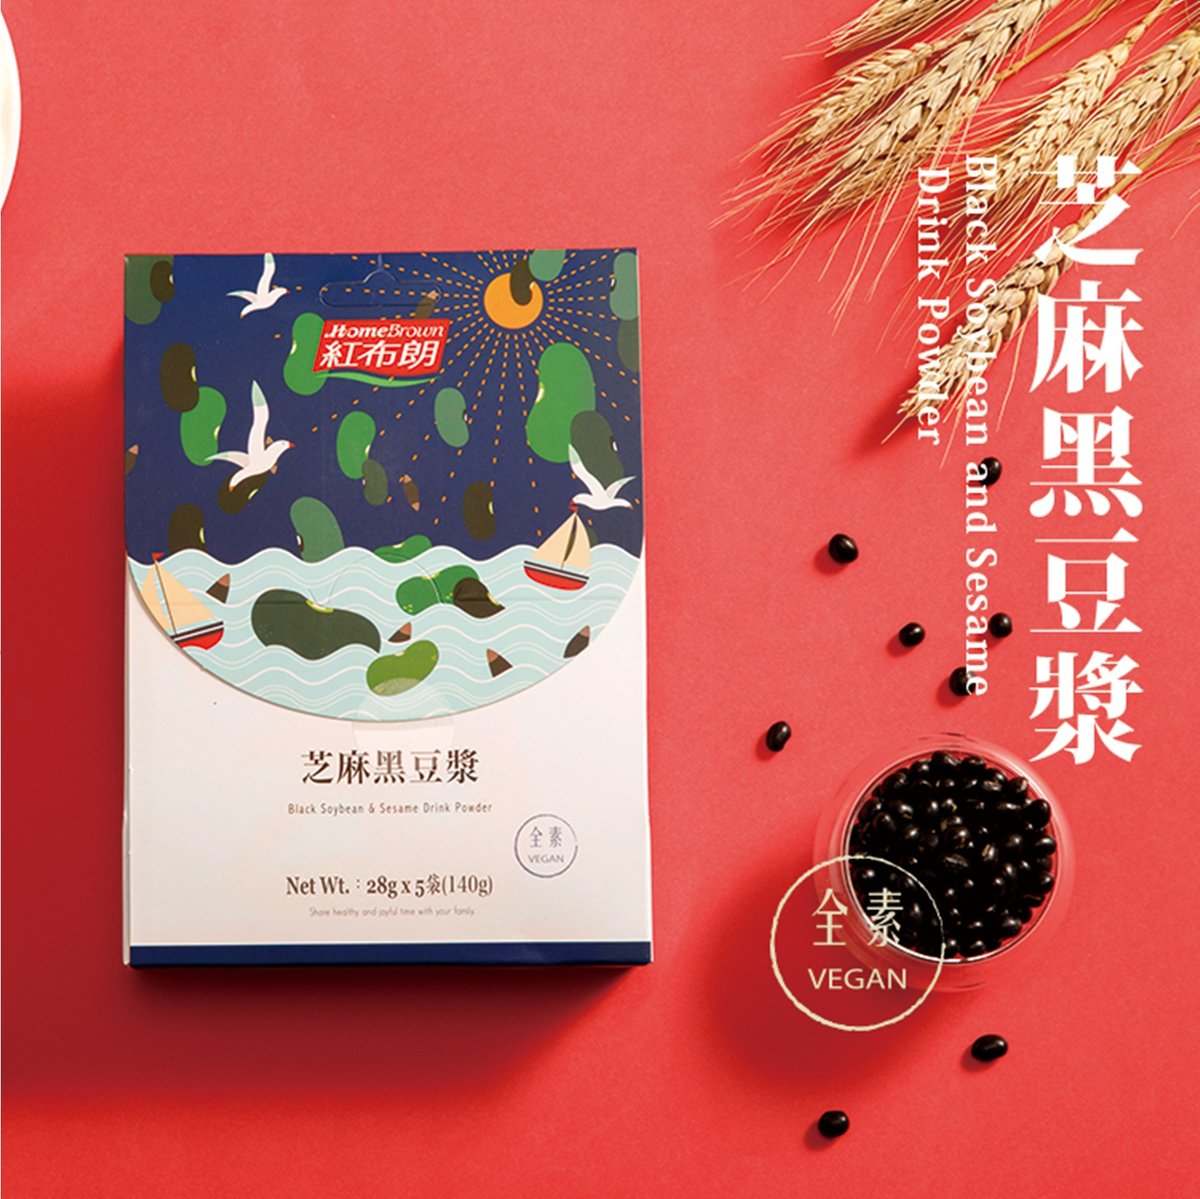 Home Brown Black Soy Beans & Sesame Drink (Box)